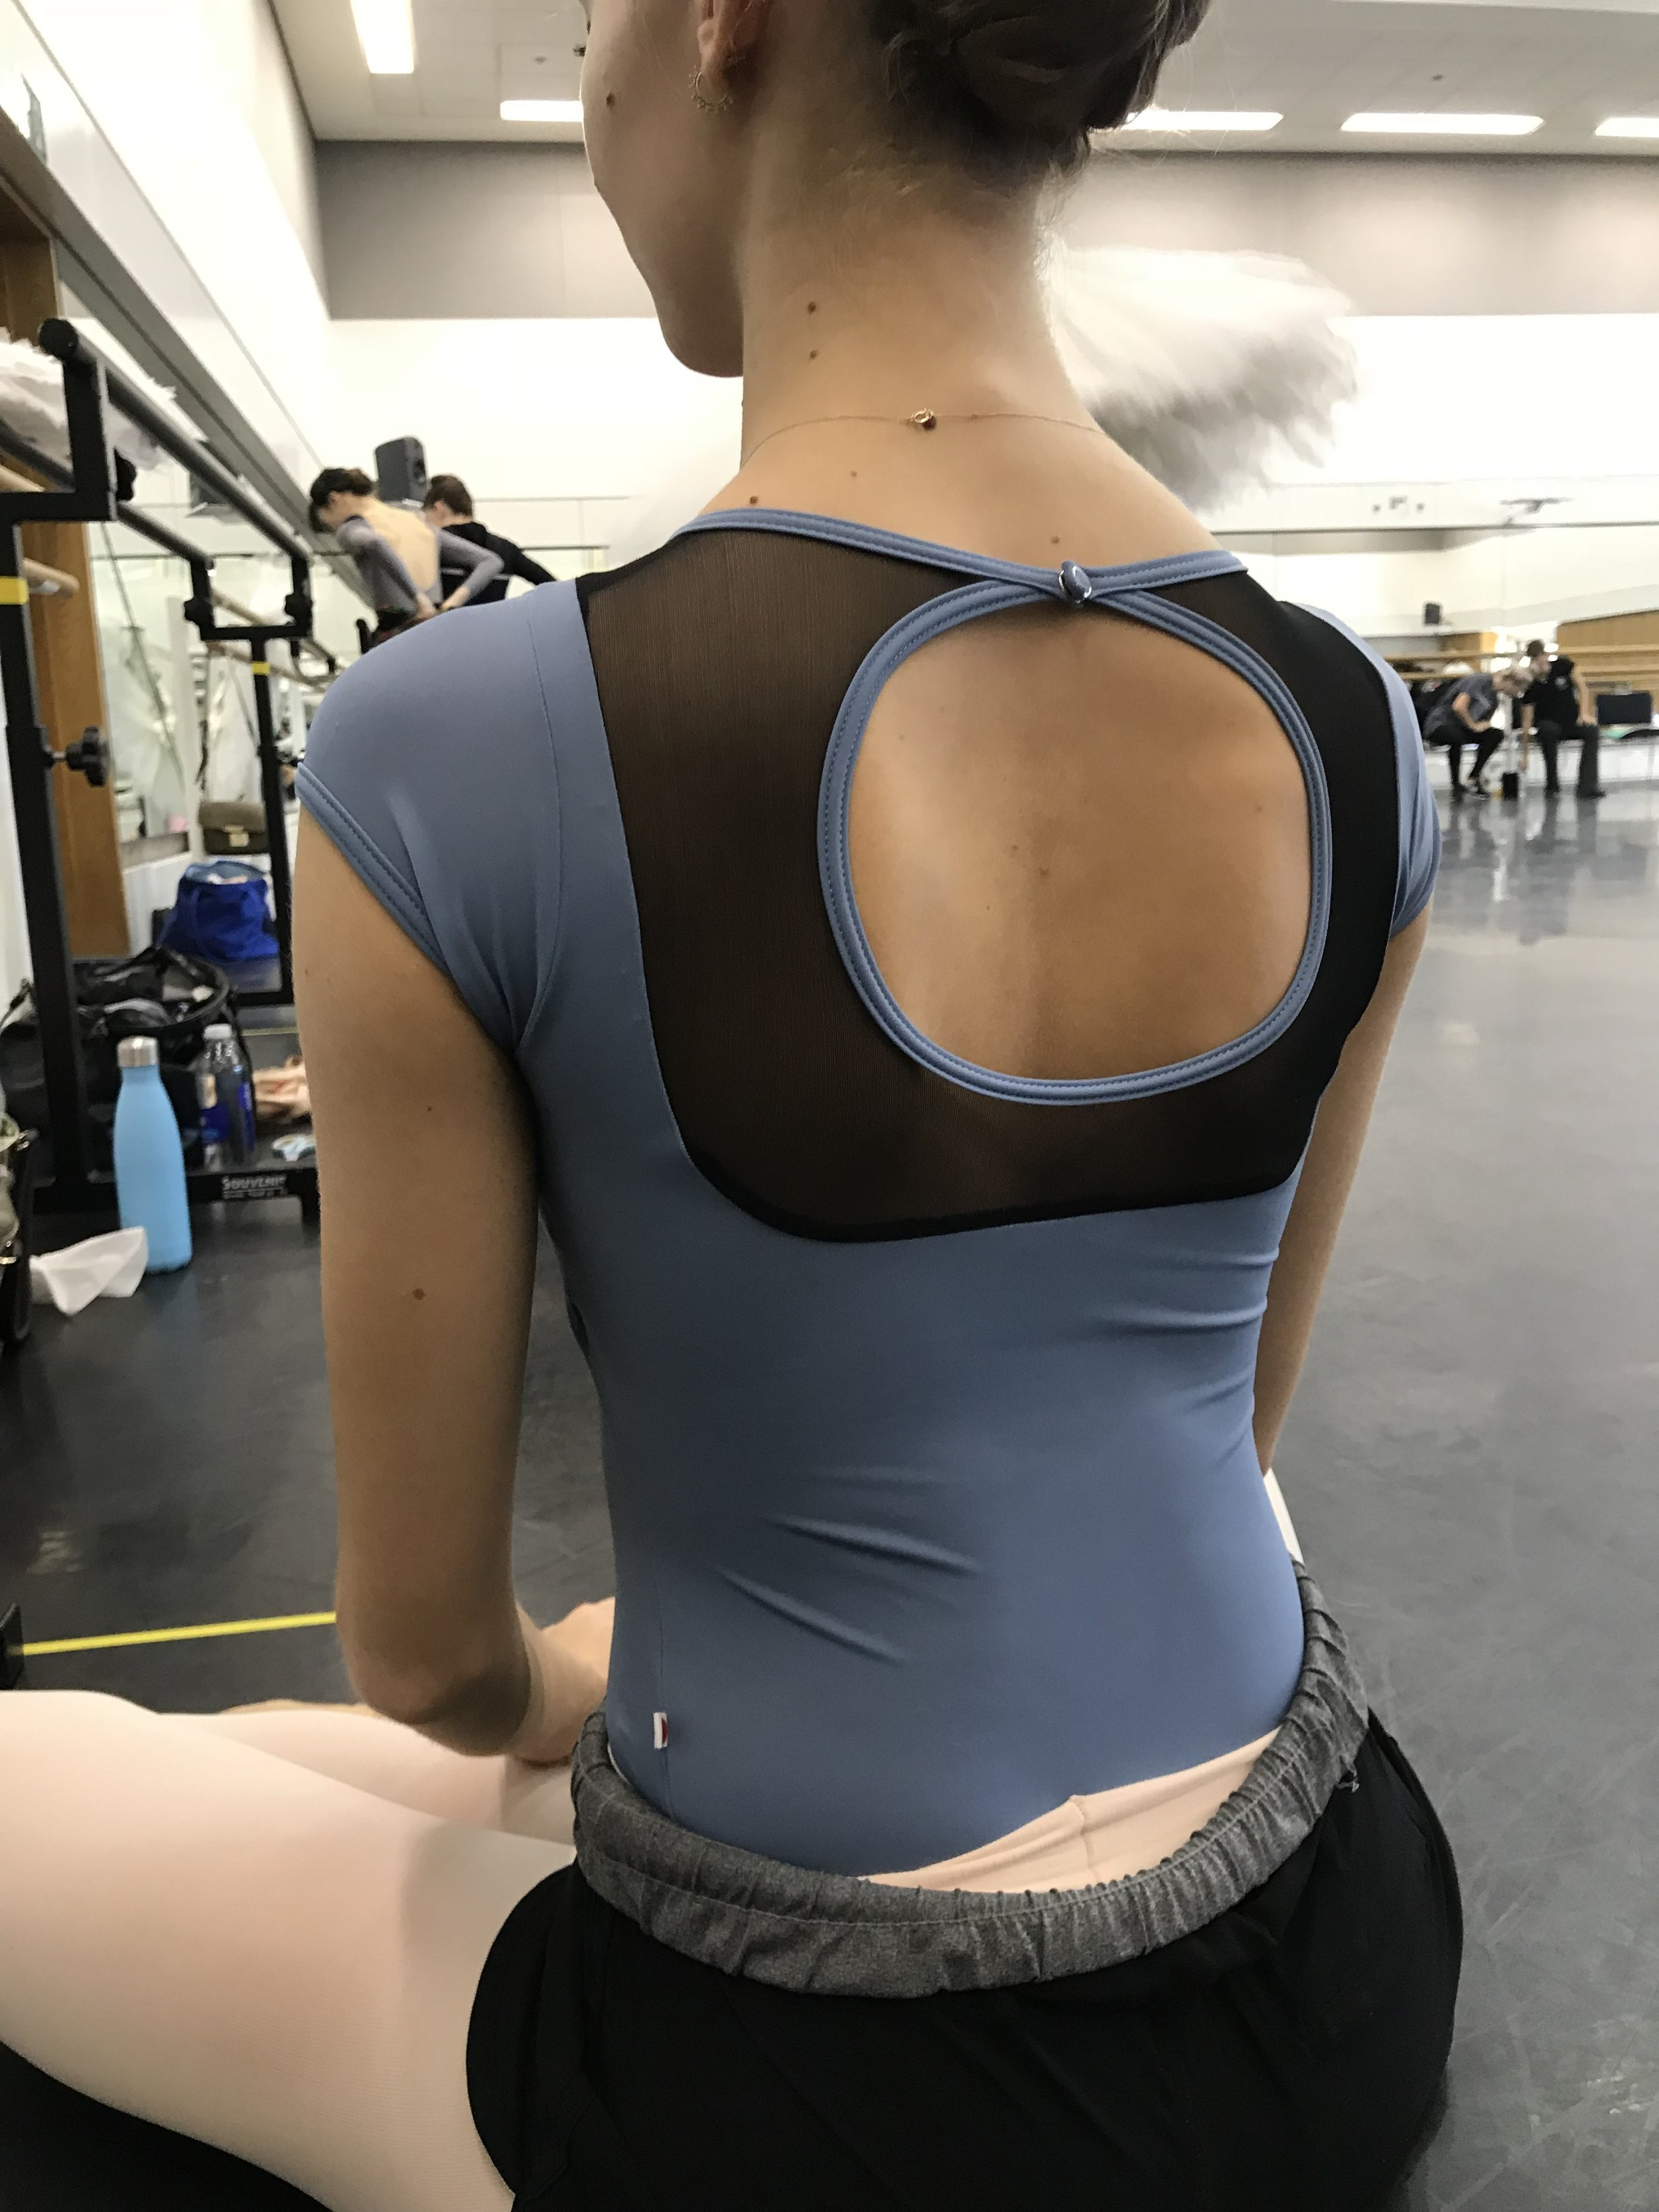 Isabel's leotard has an Art Deco vibe. Very chic.